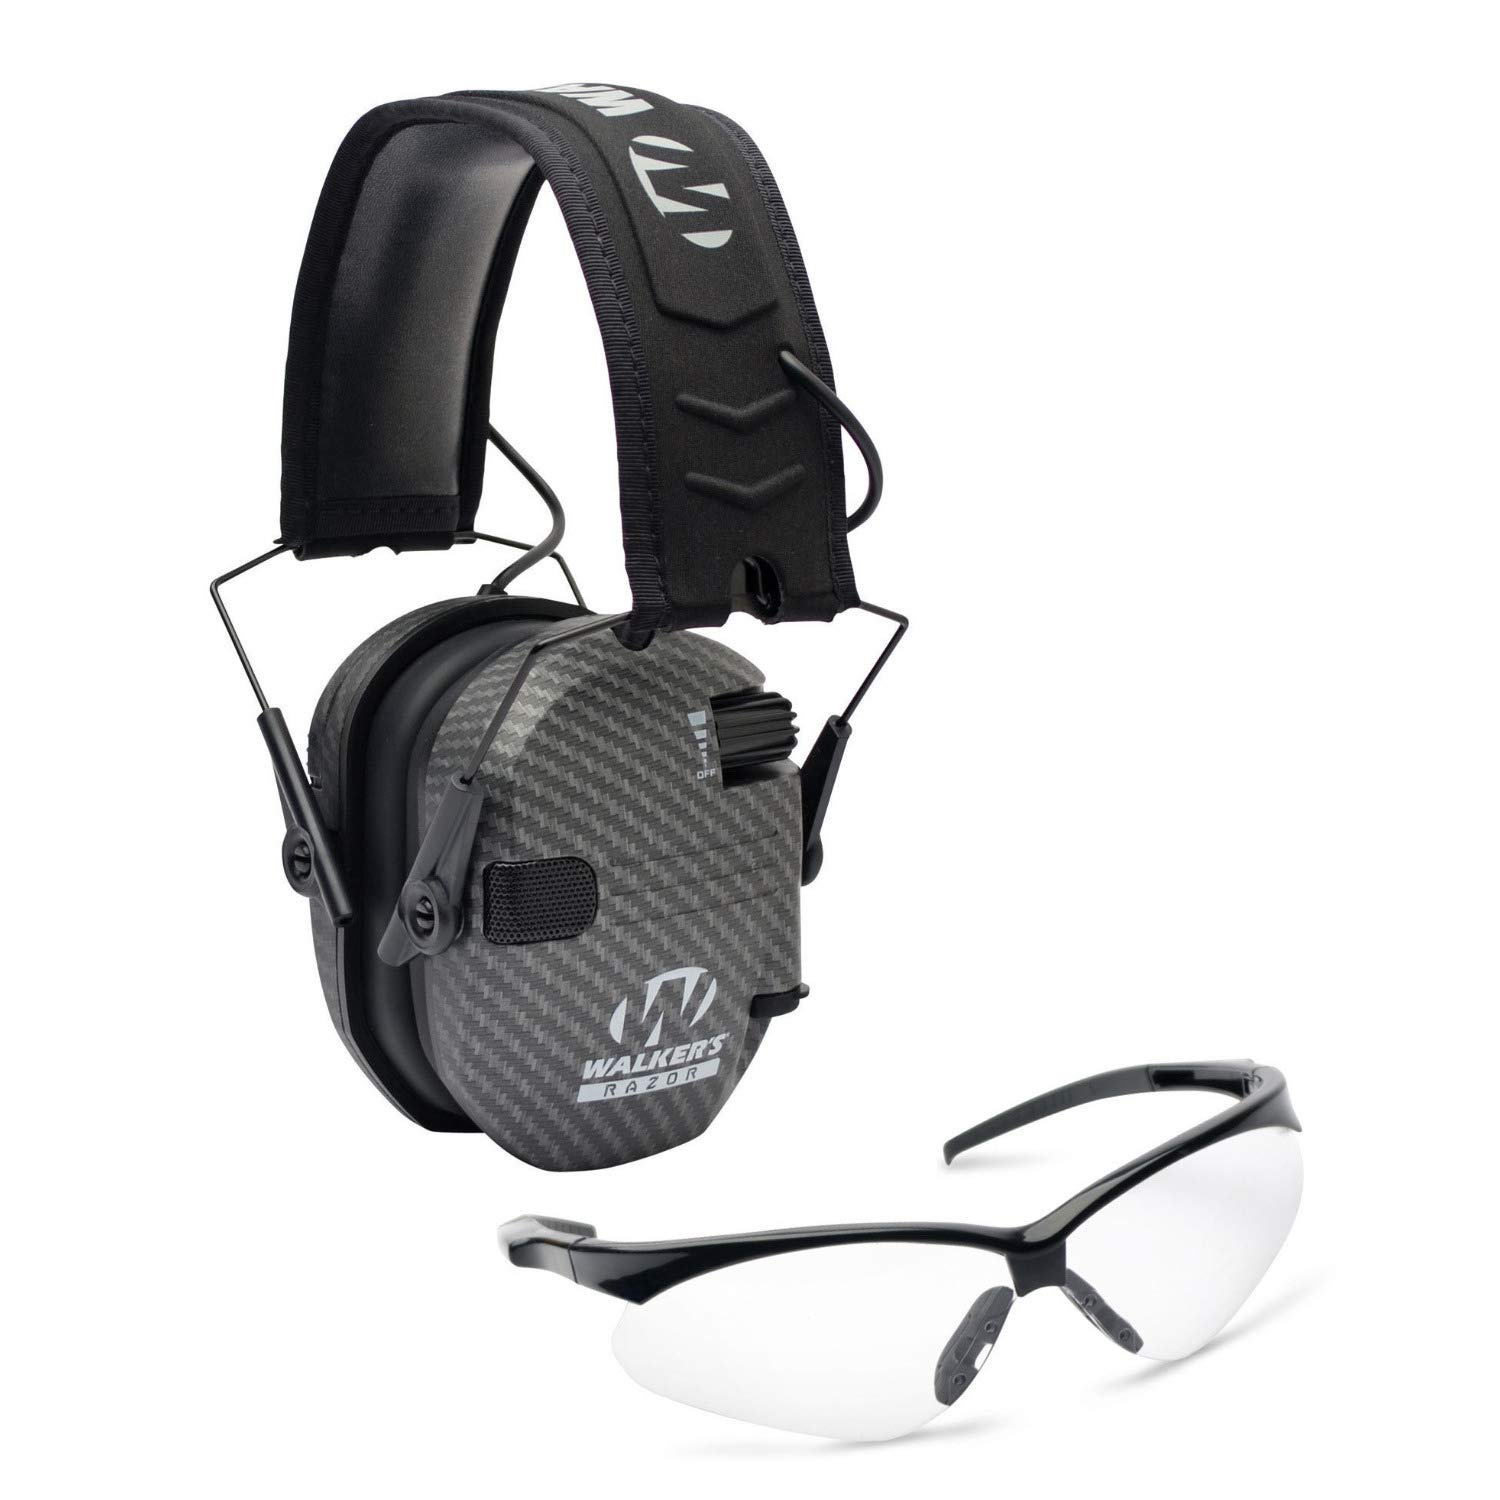 Walkers Razor Slim Electronic Hearing Protection Muffs with Sound Amplification and Suppression and Shooting Glasses Kit, Carbon by Walkers (Image #1)